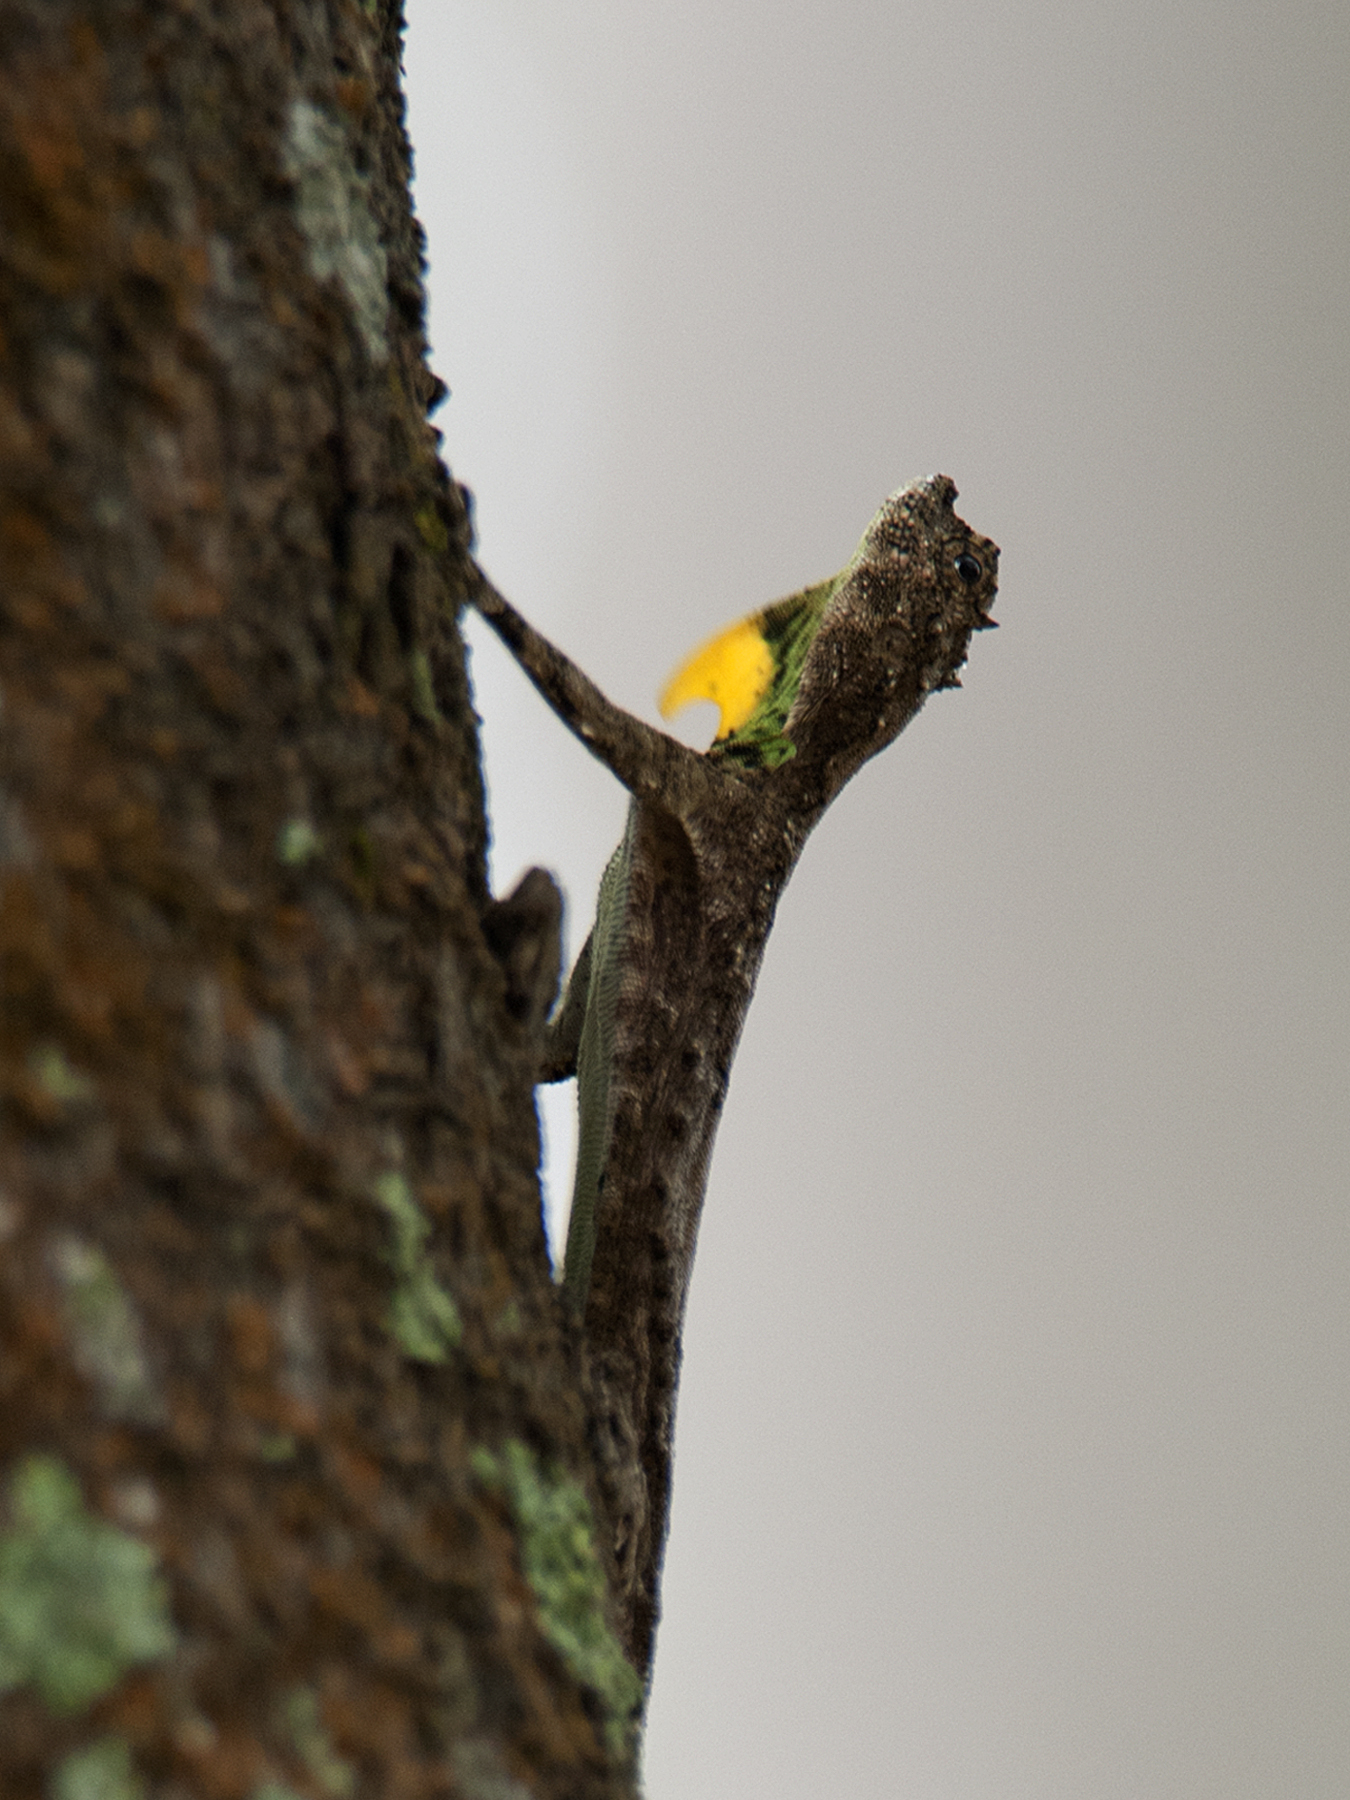 Reptiles of India #5 : The Southern Flying Lizard